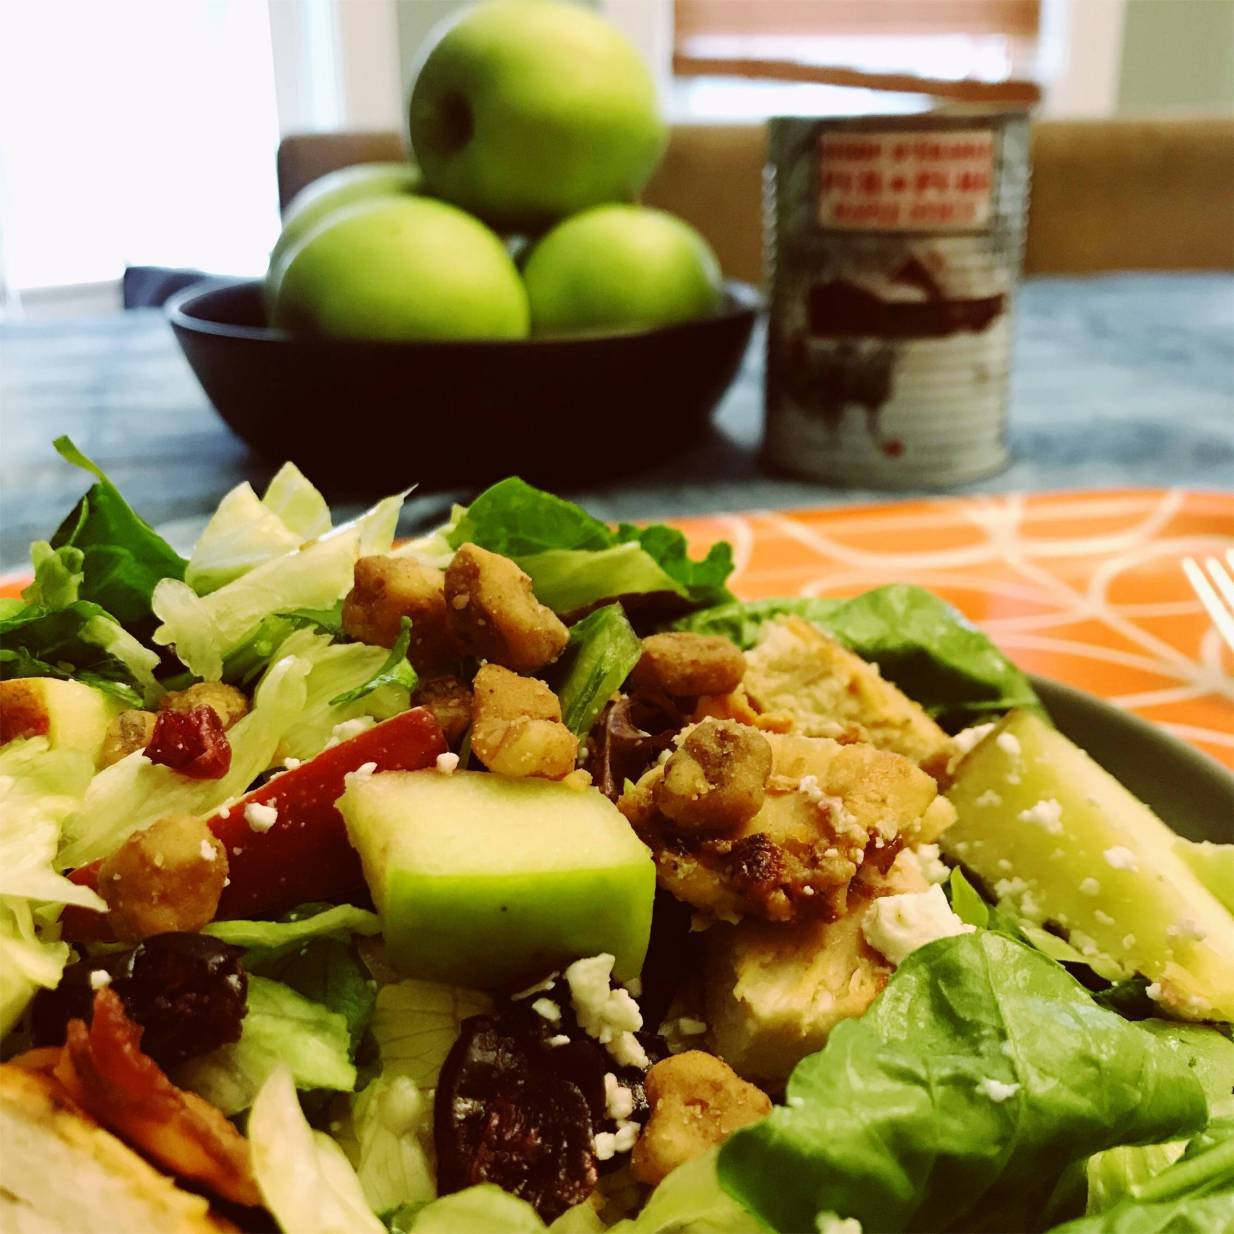 Wendy's Harvest Chicken Salad is filled with delicious fruits and vegetables as well as grilled chicken, salty bacon and topped with sweet walnuts and a tart apple cider vinaigrette.